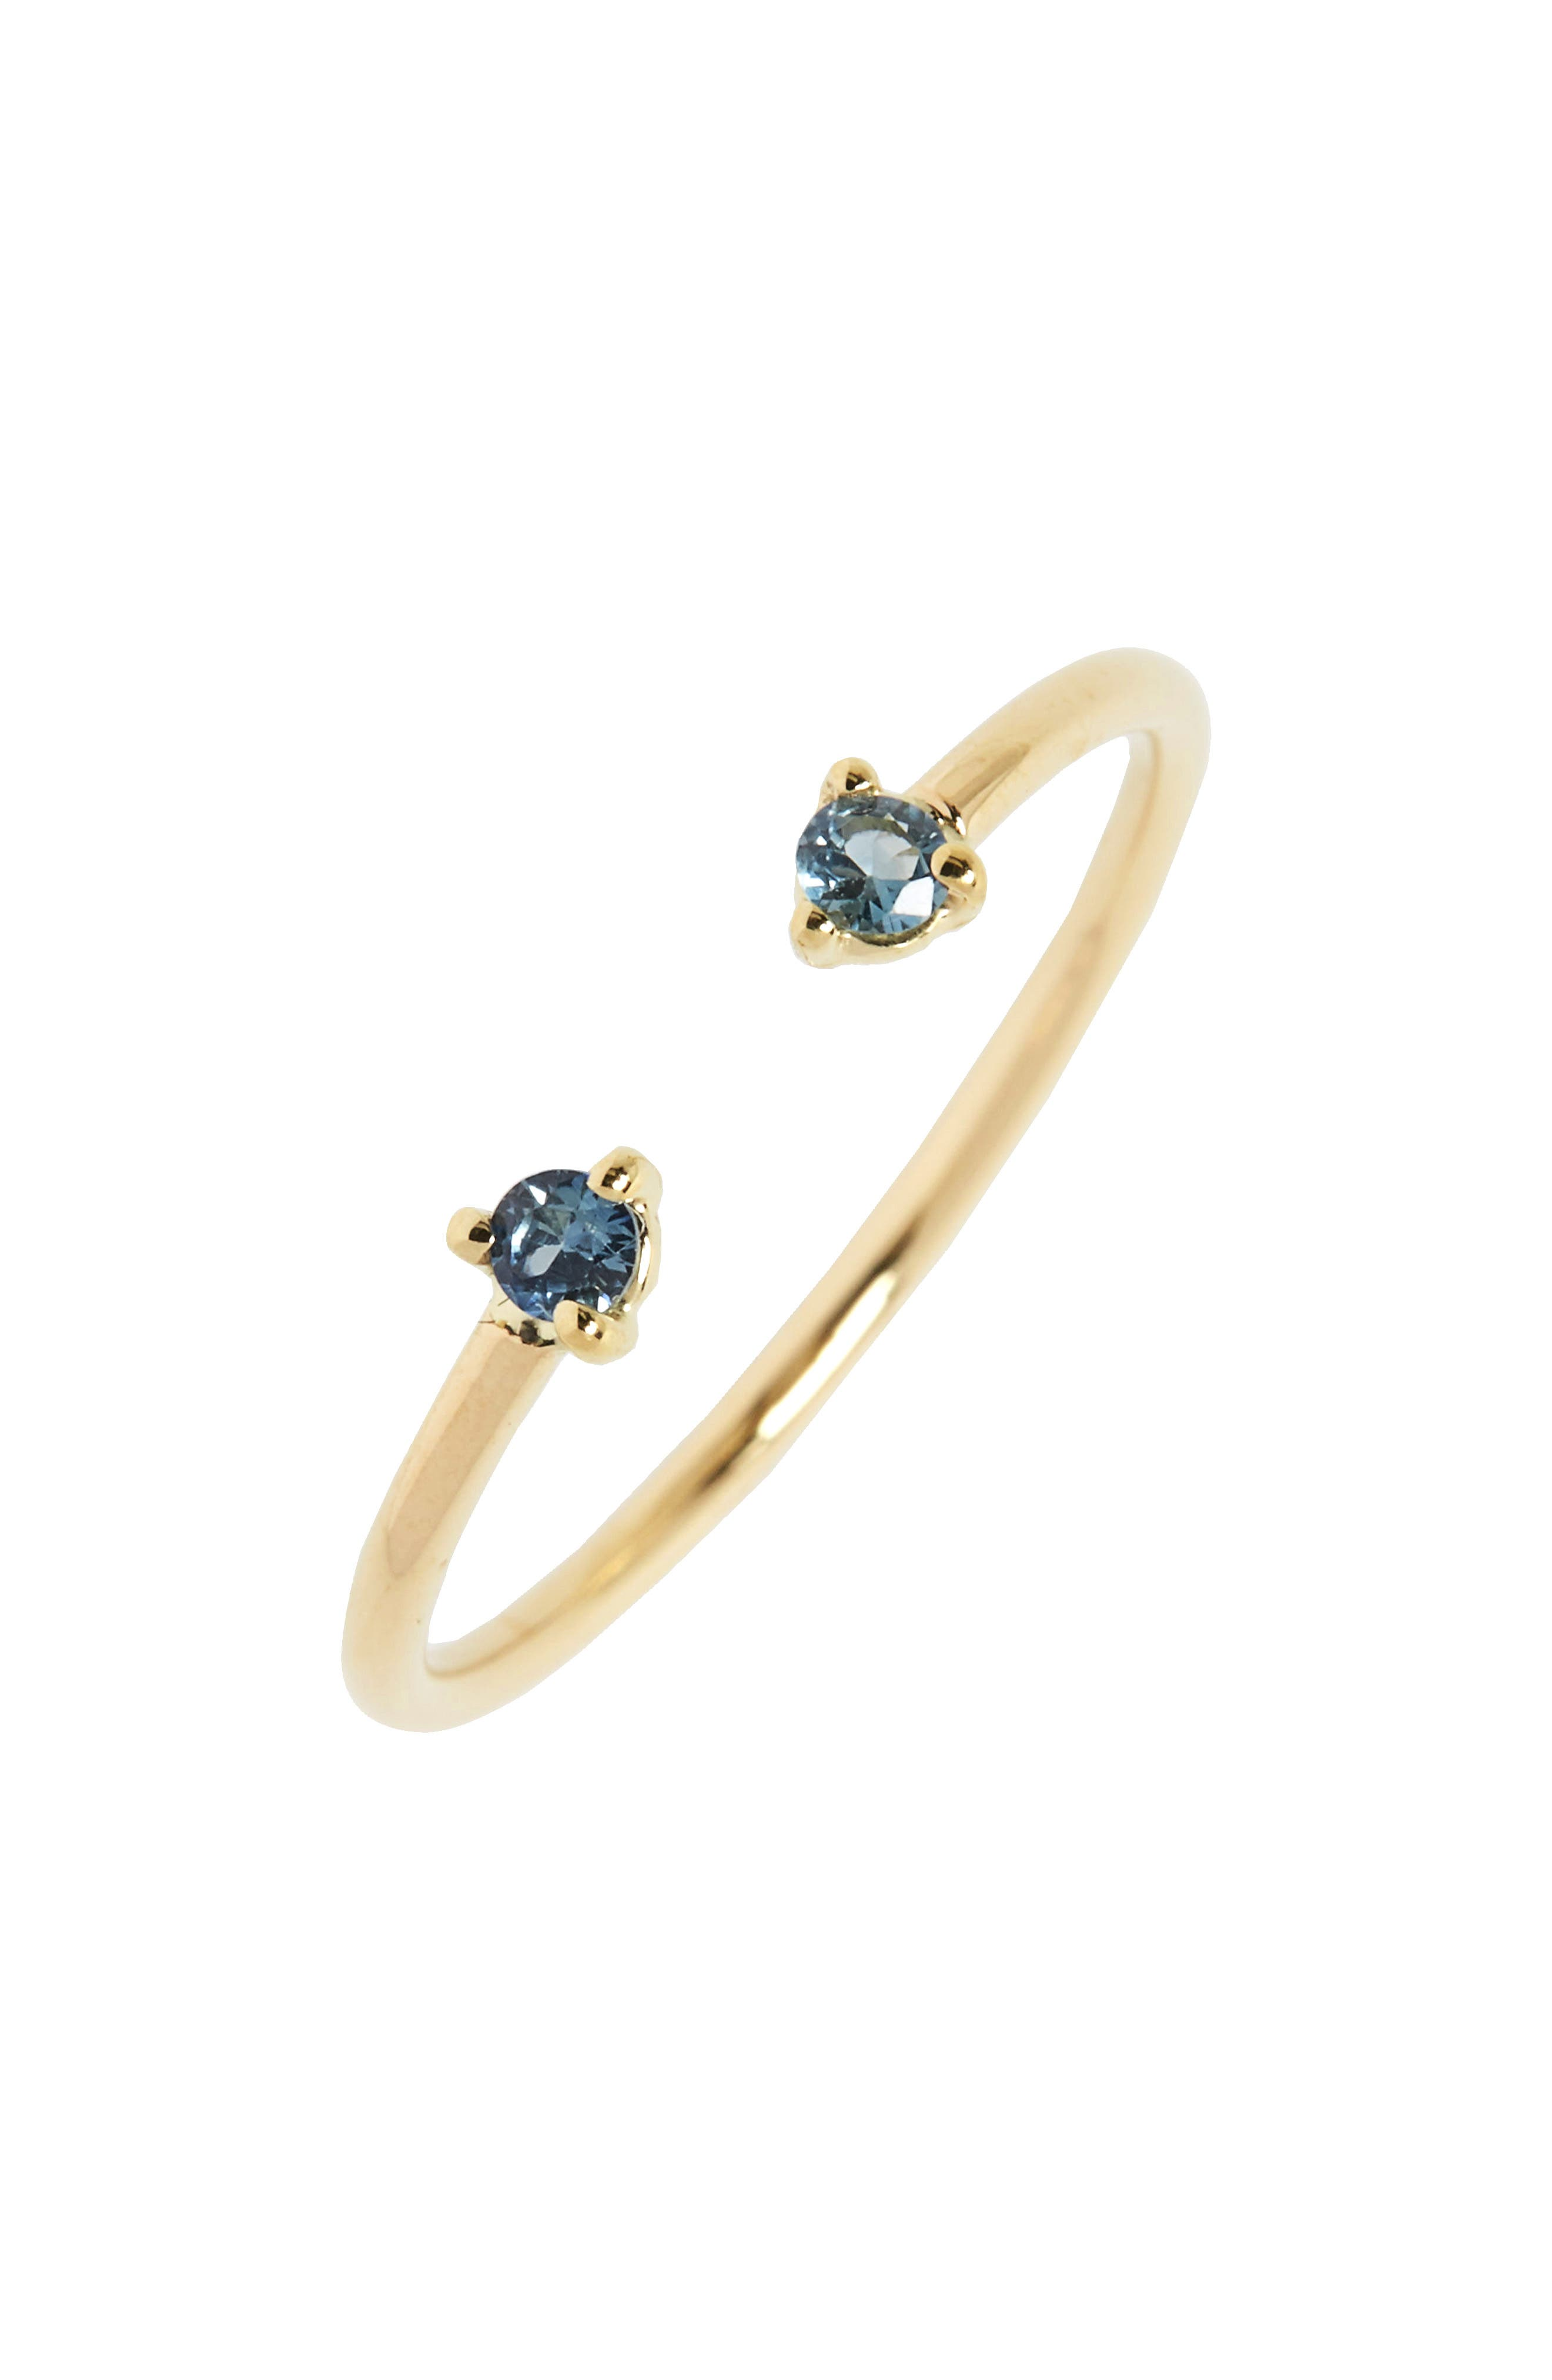 Counting Collection Two-Step Sapphire Ring,                         Main,                         color, SAPPHIRE/ GOLD